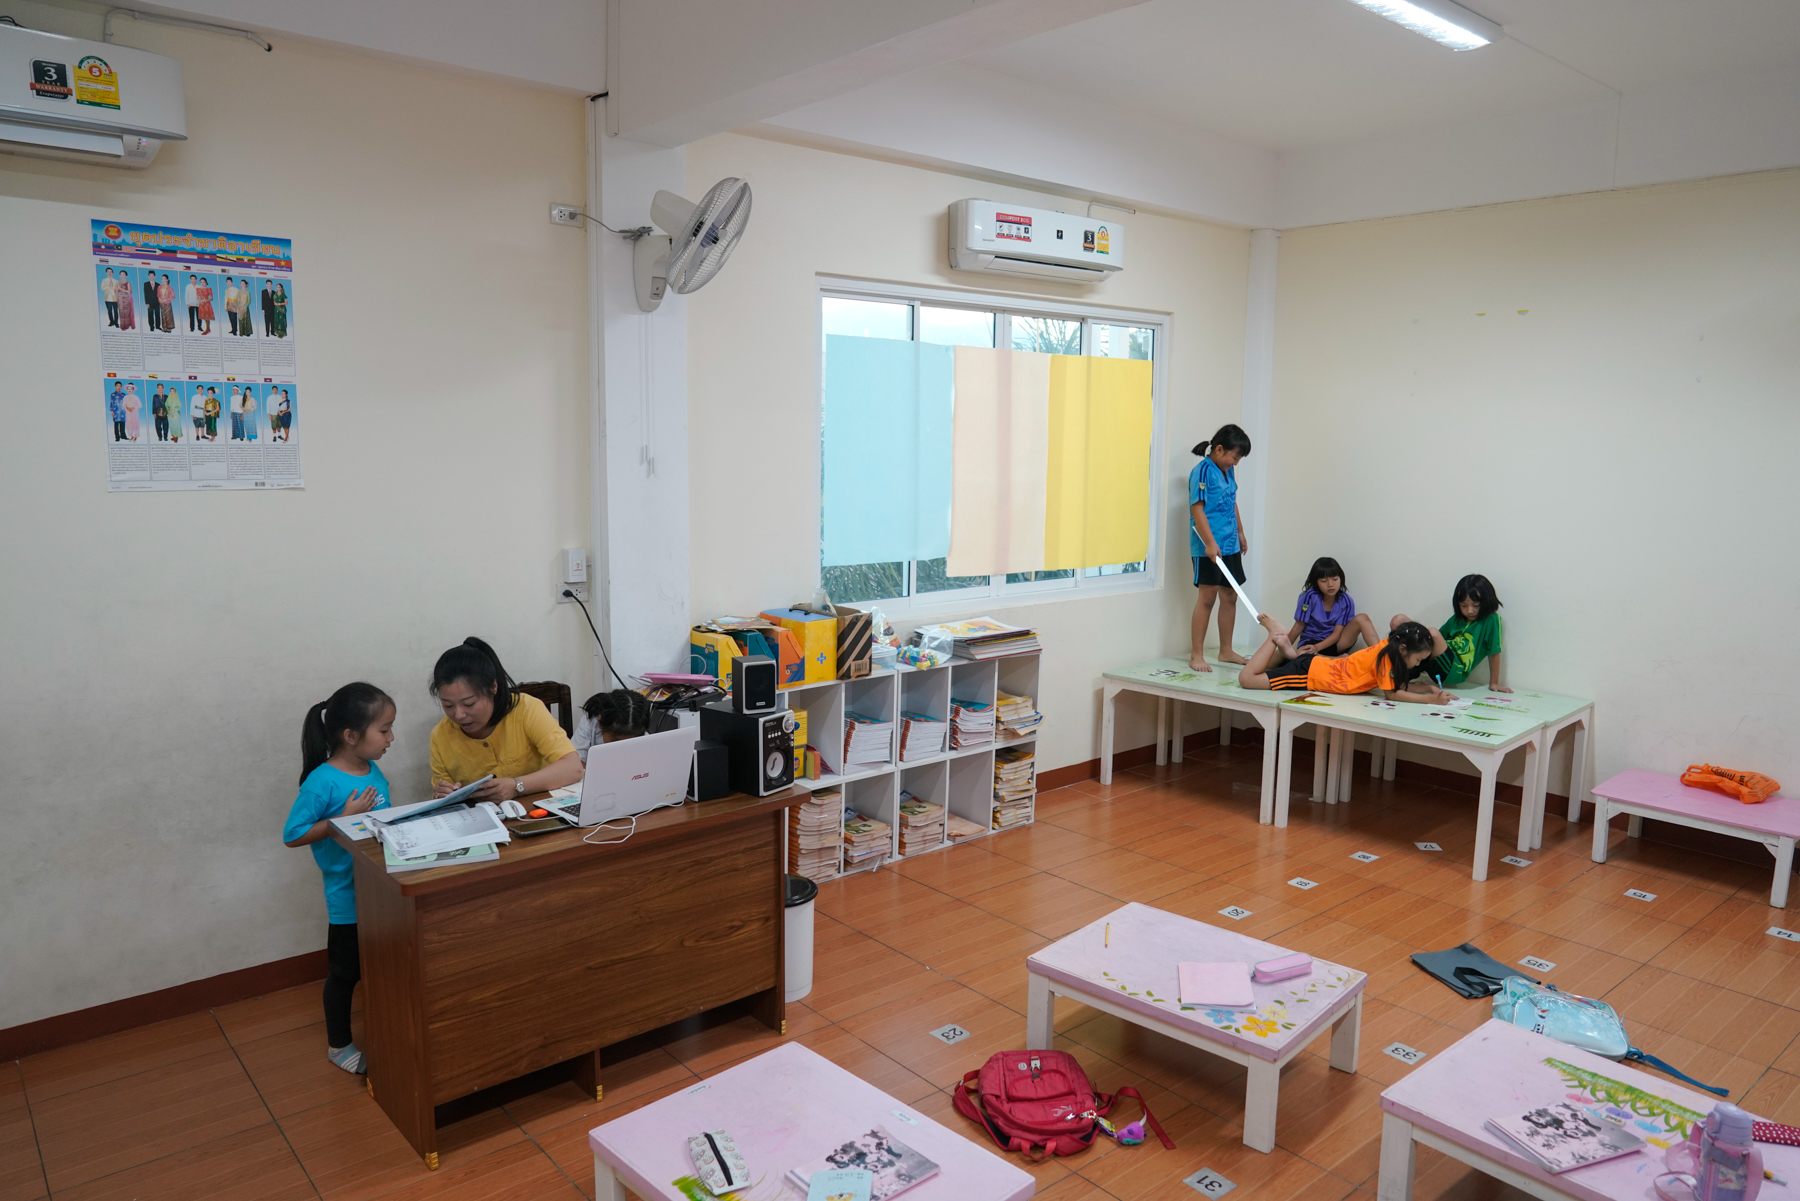 Six-year-old Diandian (in purple) and a group of her classmates study Mandarin at the Huizhong Chinese Language Center in Chiang Mai, January 16, 2019. English is the main language in most international schools. A number of Chiang Mai international schools offer early education to children as young as two. Many Chinese children in these programs left China before achieving fluency in their mother tongue, so parents arrange for them to study Mandarin after school.